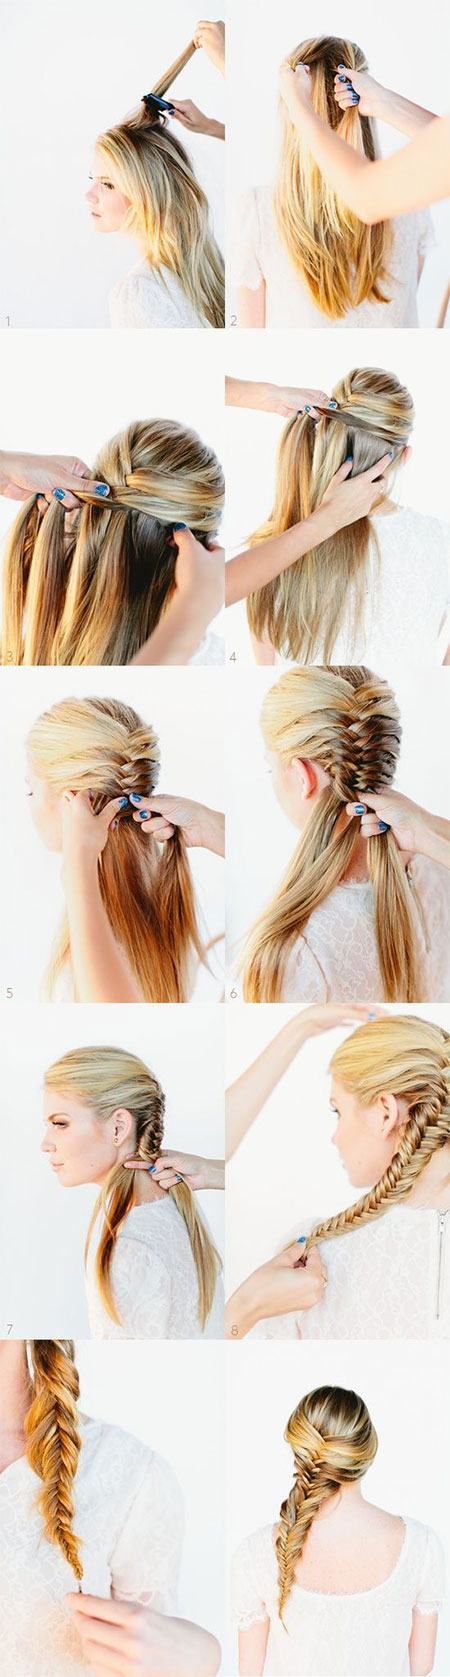 25-Fun-Quick-Spring-Summer-Hairstyle-Tutorials-2014-For-Girls-Women-15